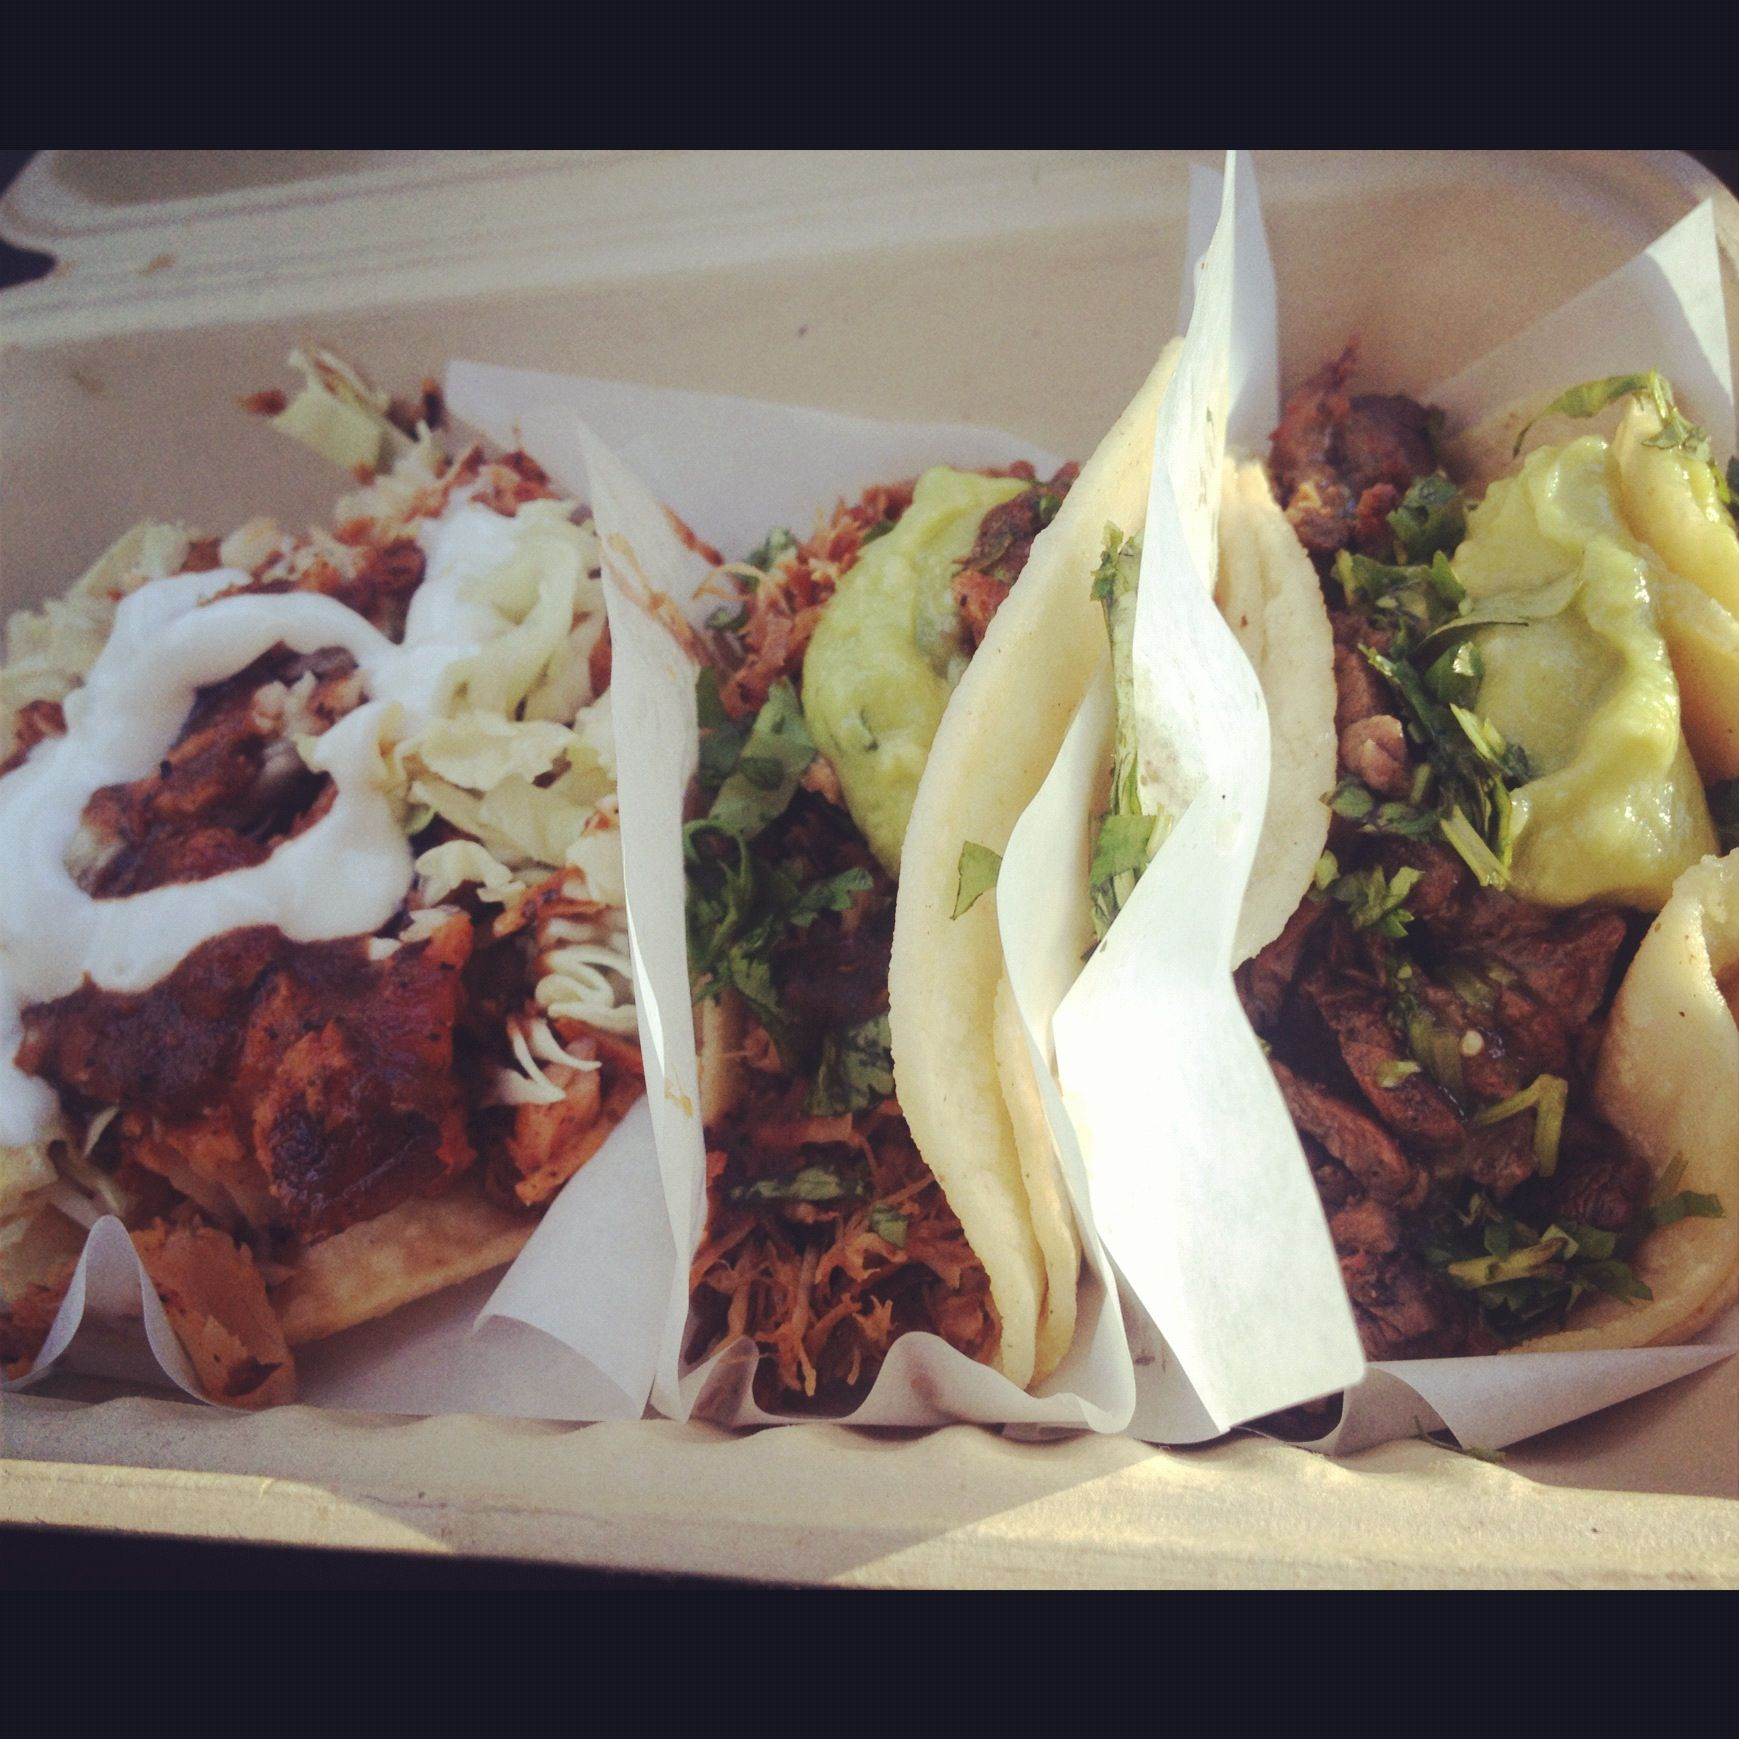 Chando's Tacos, Sacramento, CA. Inexpensive, good quality food! #MyHometownPins